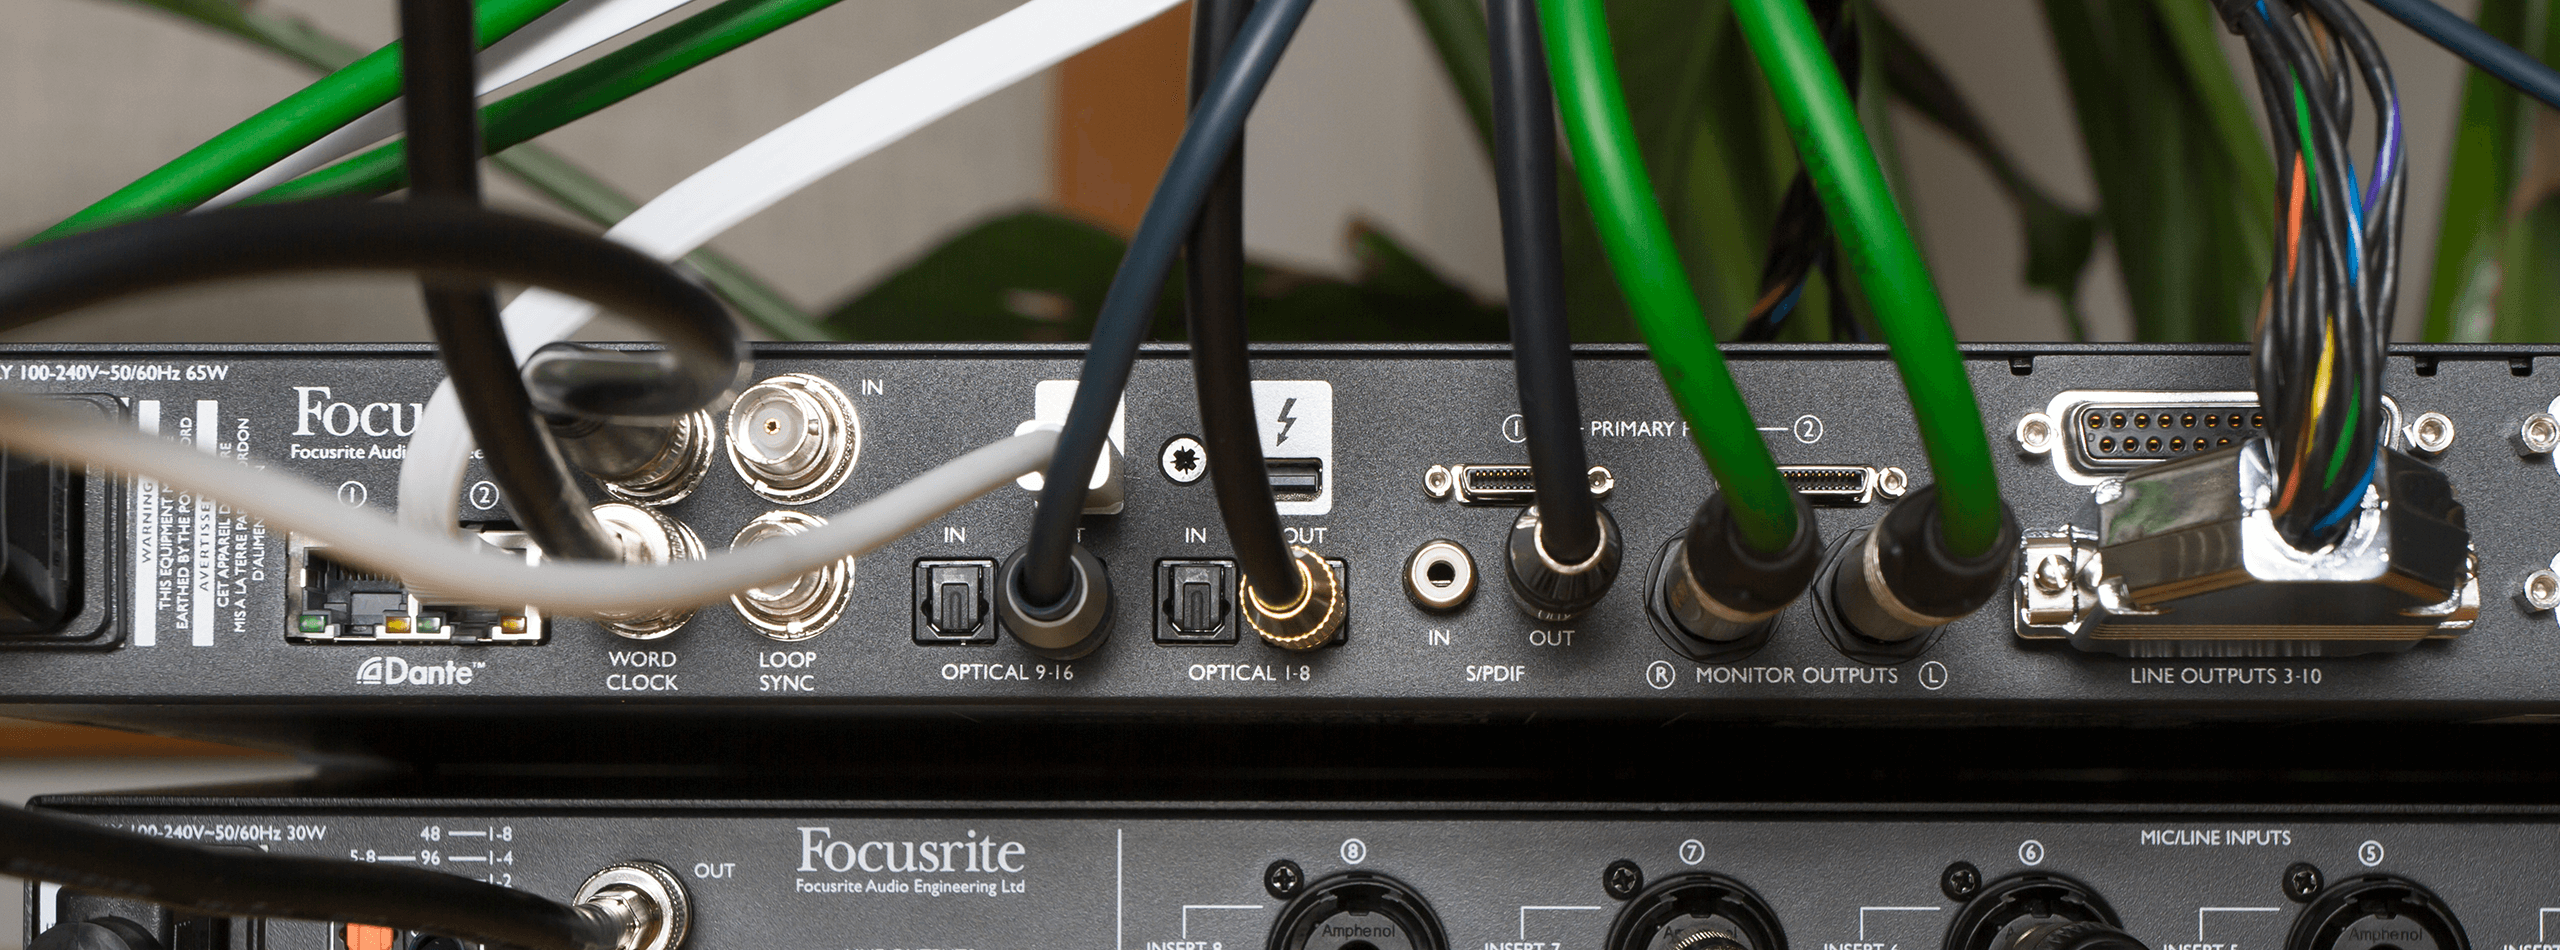 System Science Part 4 Digital Considerations Focusrite Way Toslink Optical Switch Case Study